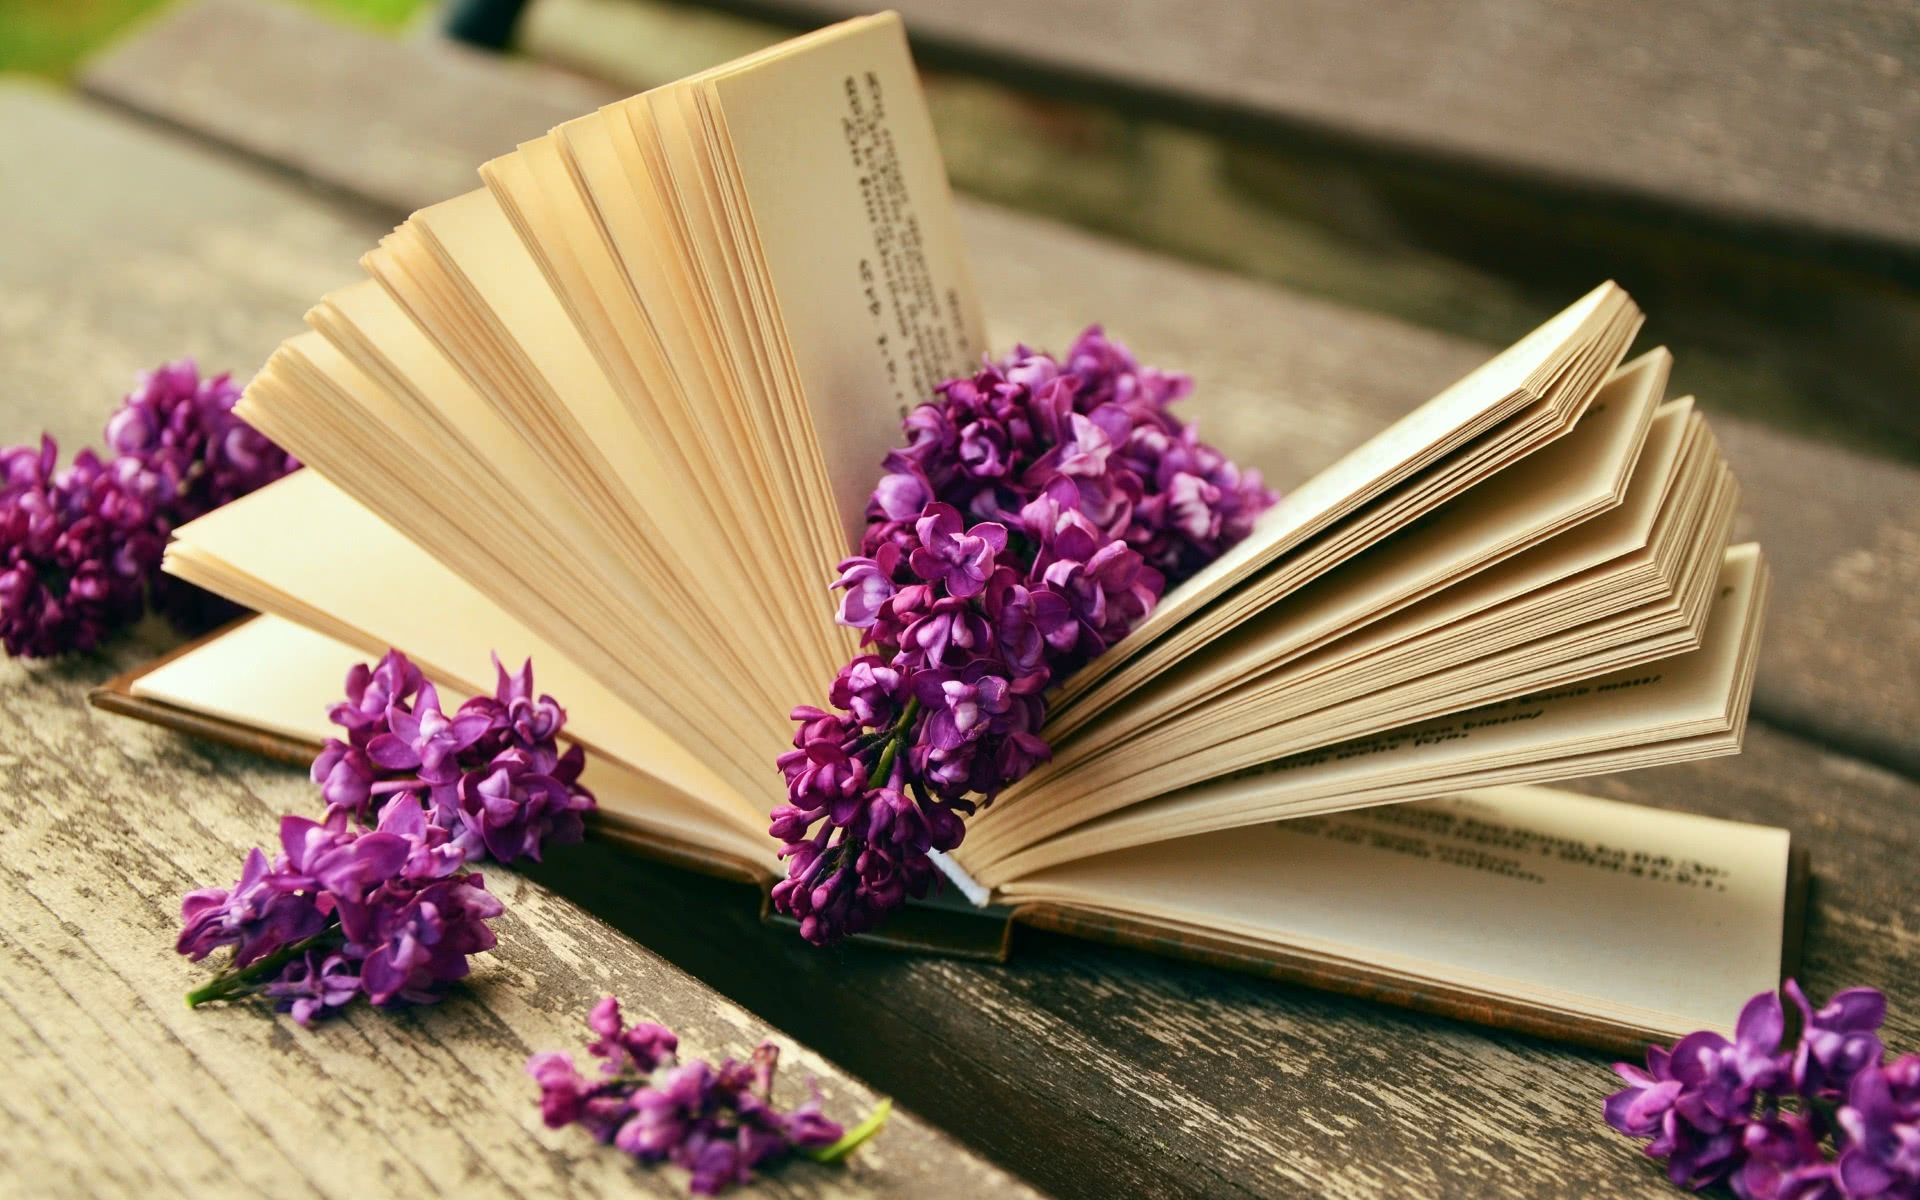 good book and Lilacs